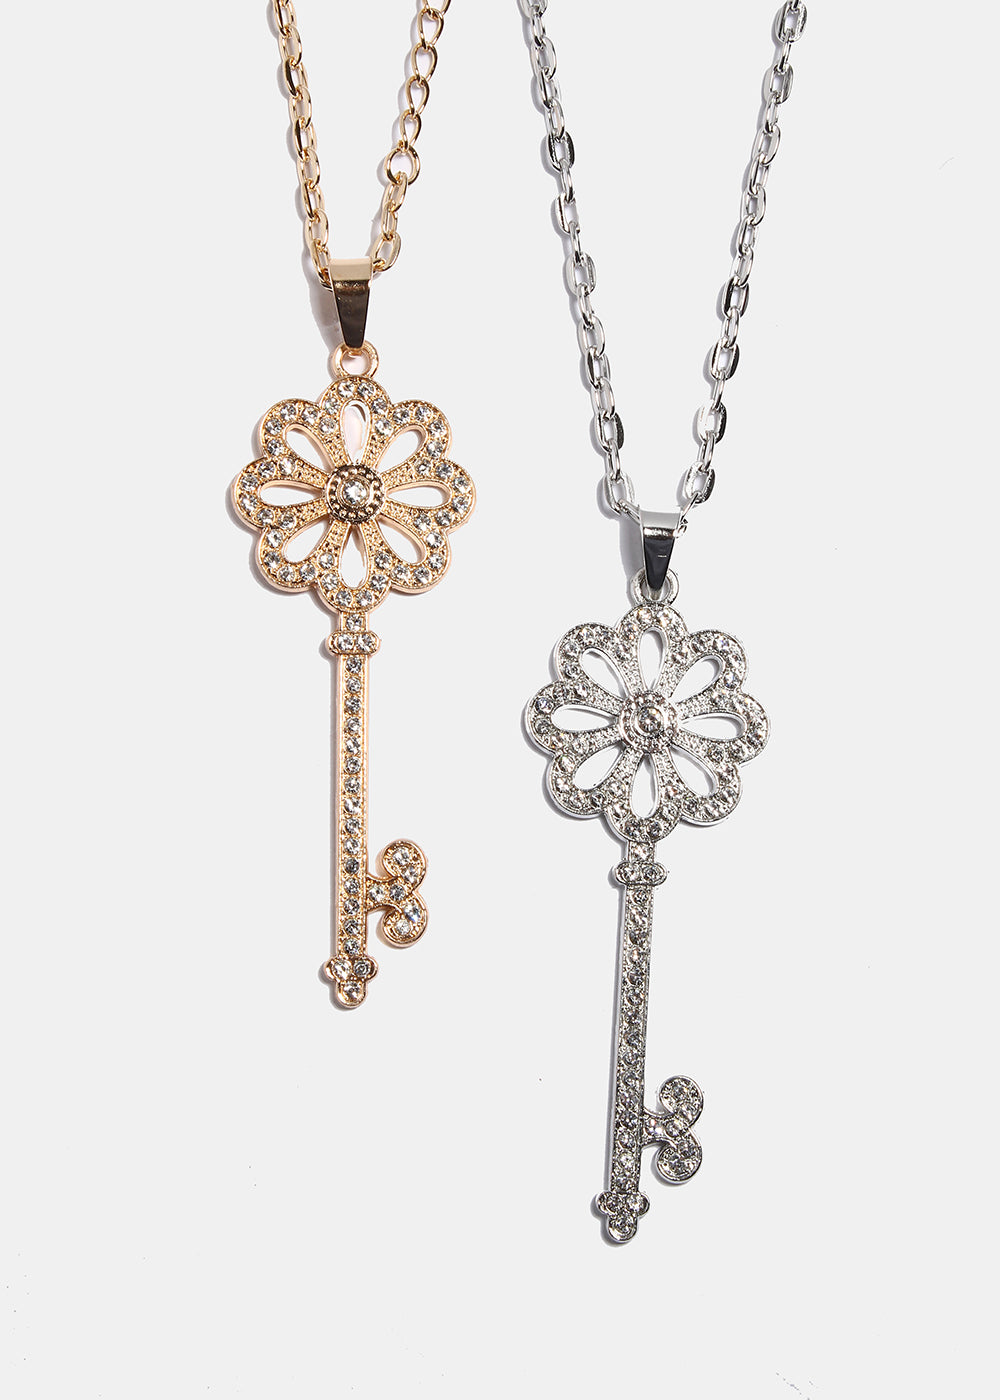 wishlist keys mini key products tgk in necklace pendant giving view the